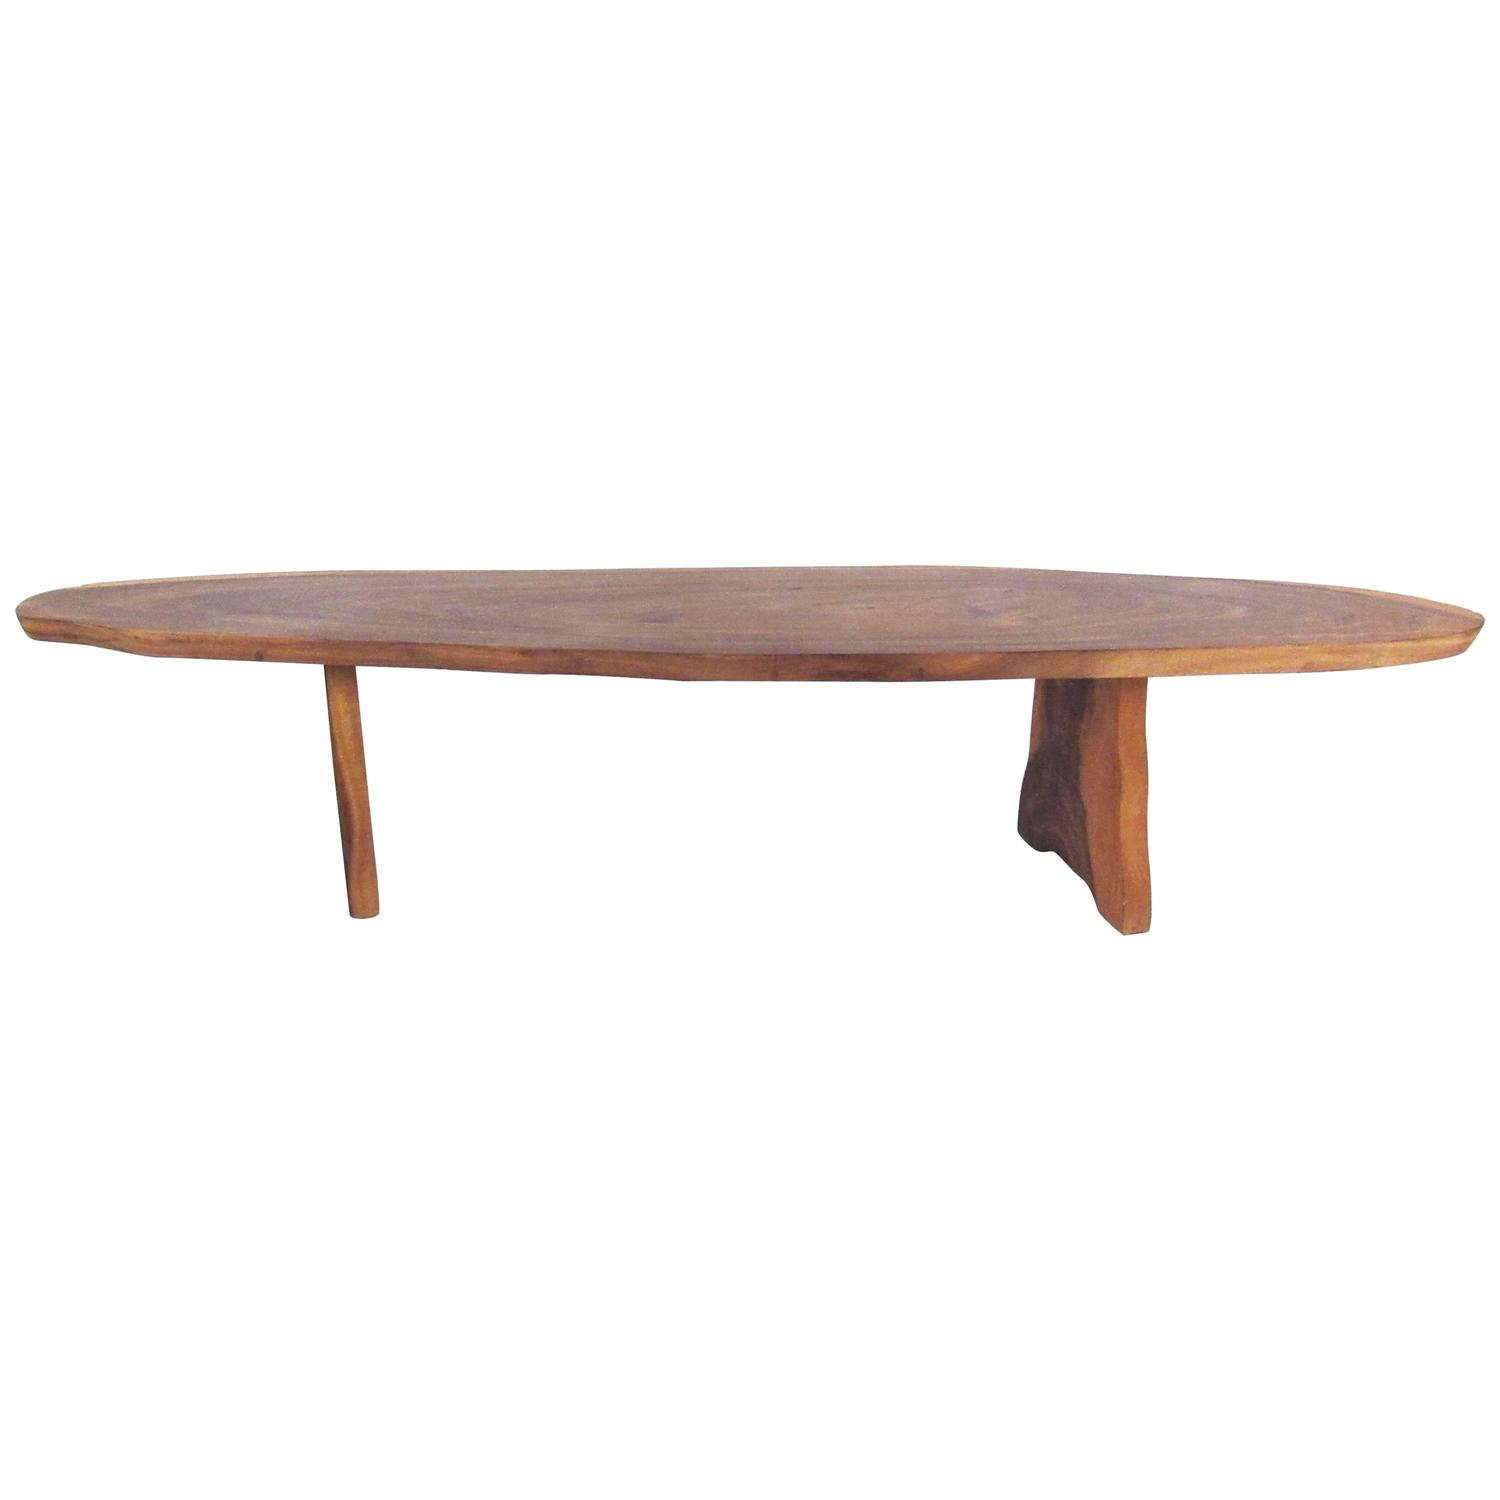 Rustic Free Edge Tree Slab Coffee Table For Sale At 1stdibs